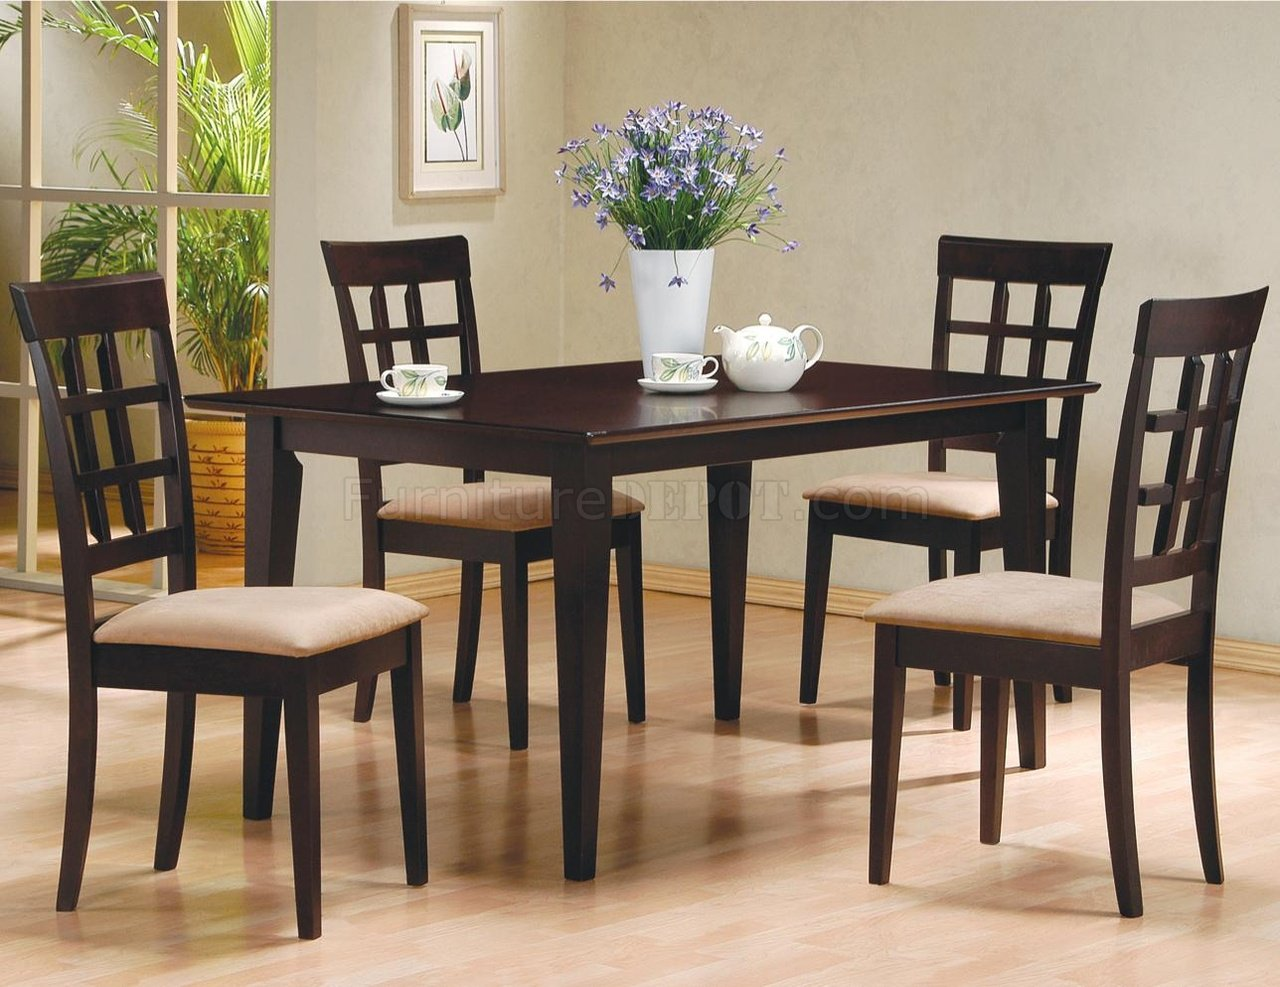 Cappuccino finish 5pc modern dinette set w microfiber seats for Kitchen dinette sets